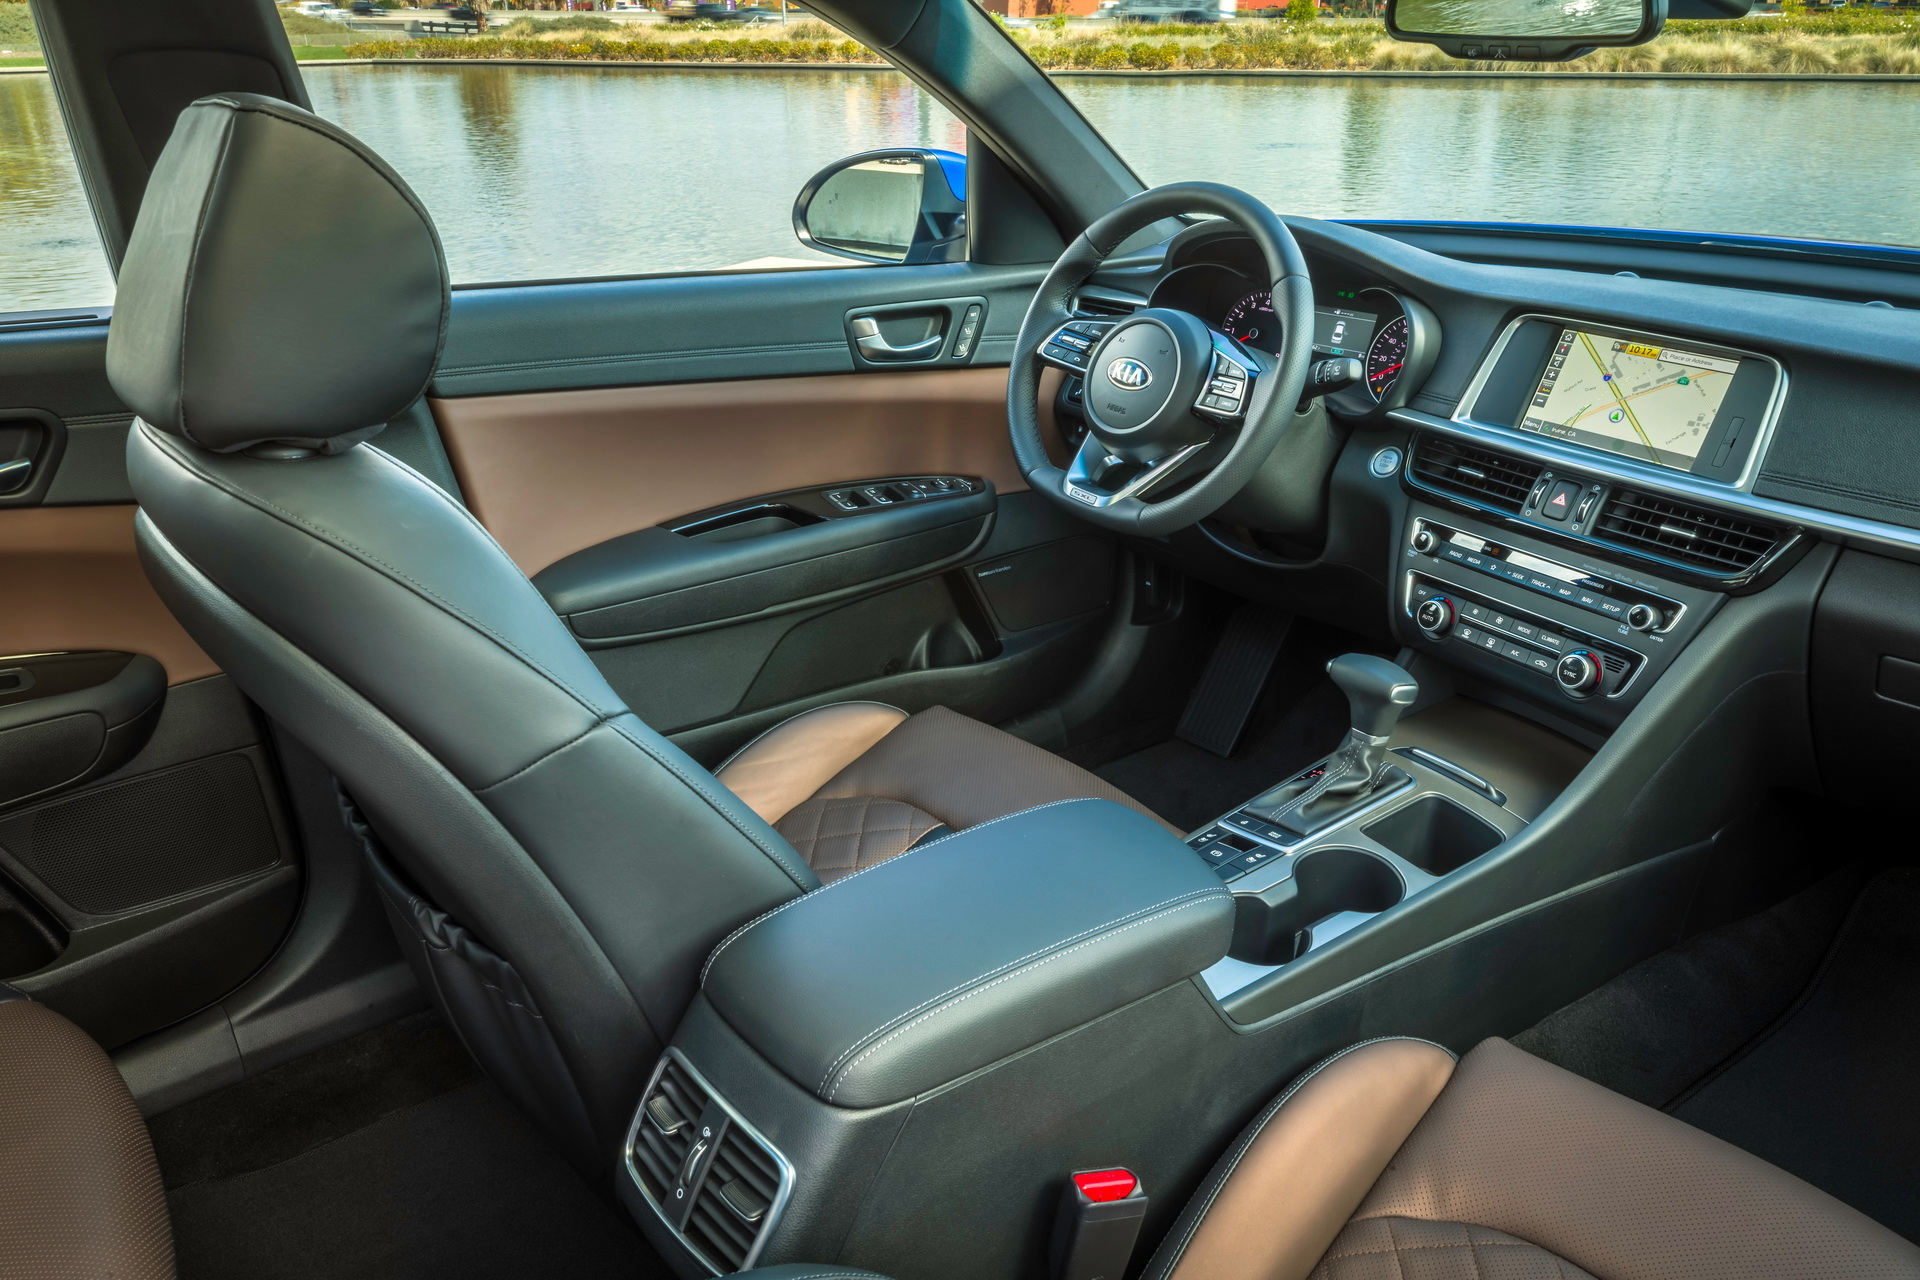 2019 Kia Optima: Minor Facelift Brings Infotainment And Trim Upgrades